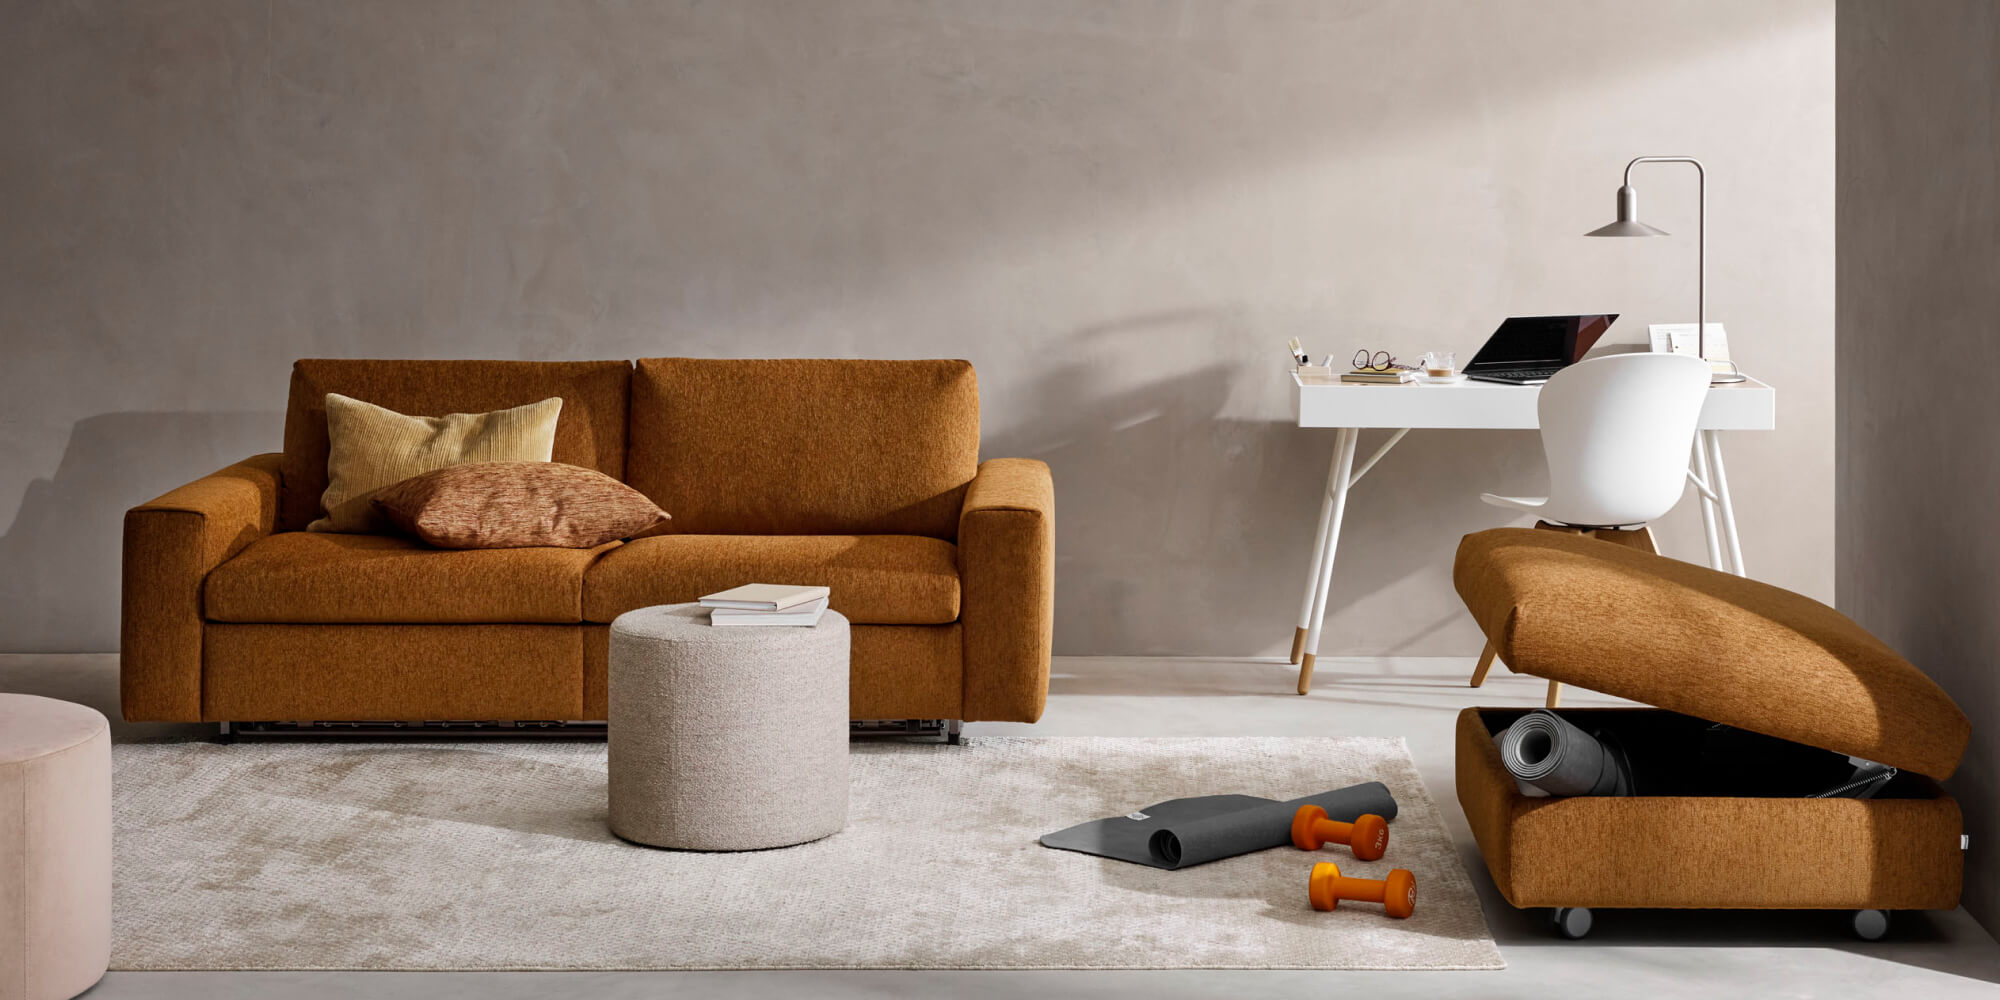 Ebay Sofa Kaufen Contemporary Danish Furniture | Discover Boconcept - Boconcept